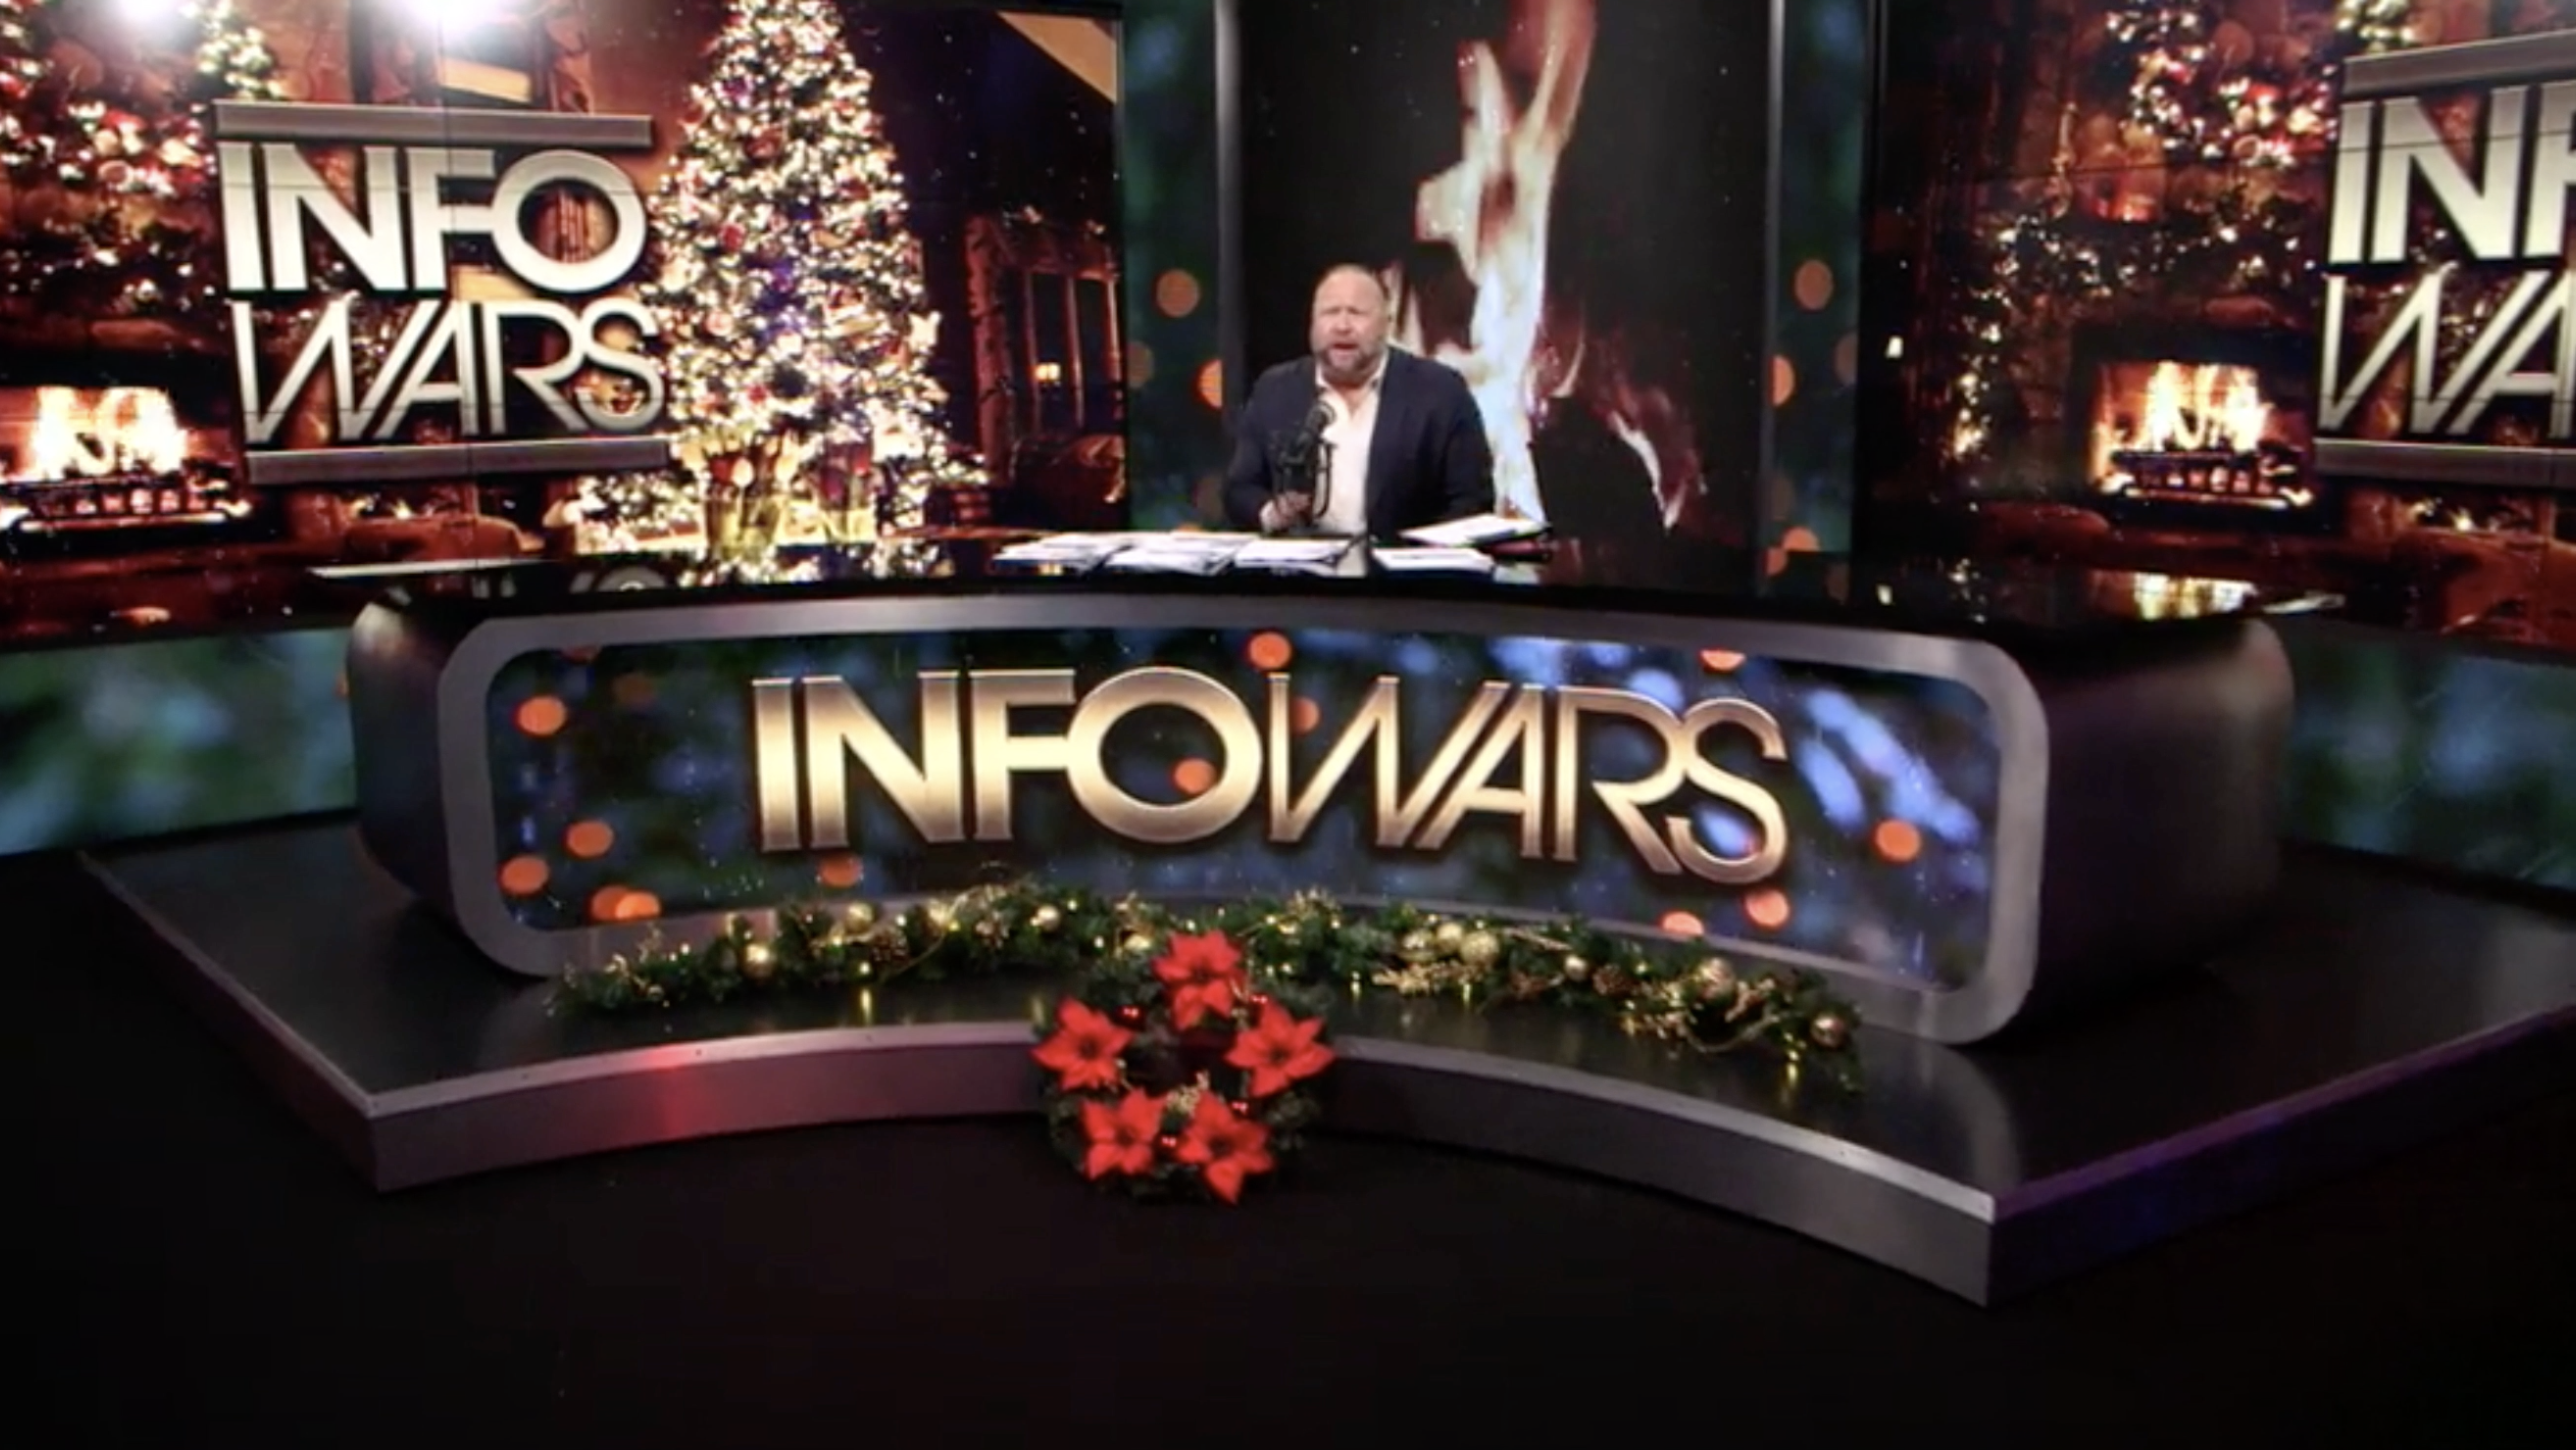 Alex Jones Christmas Tree Fire Infowars Studio EXZM Zack Mount December 17th 2020